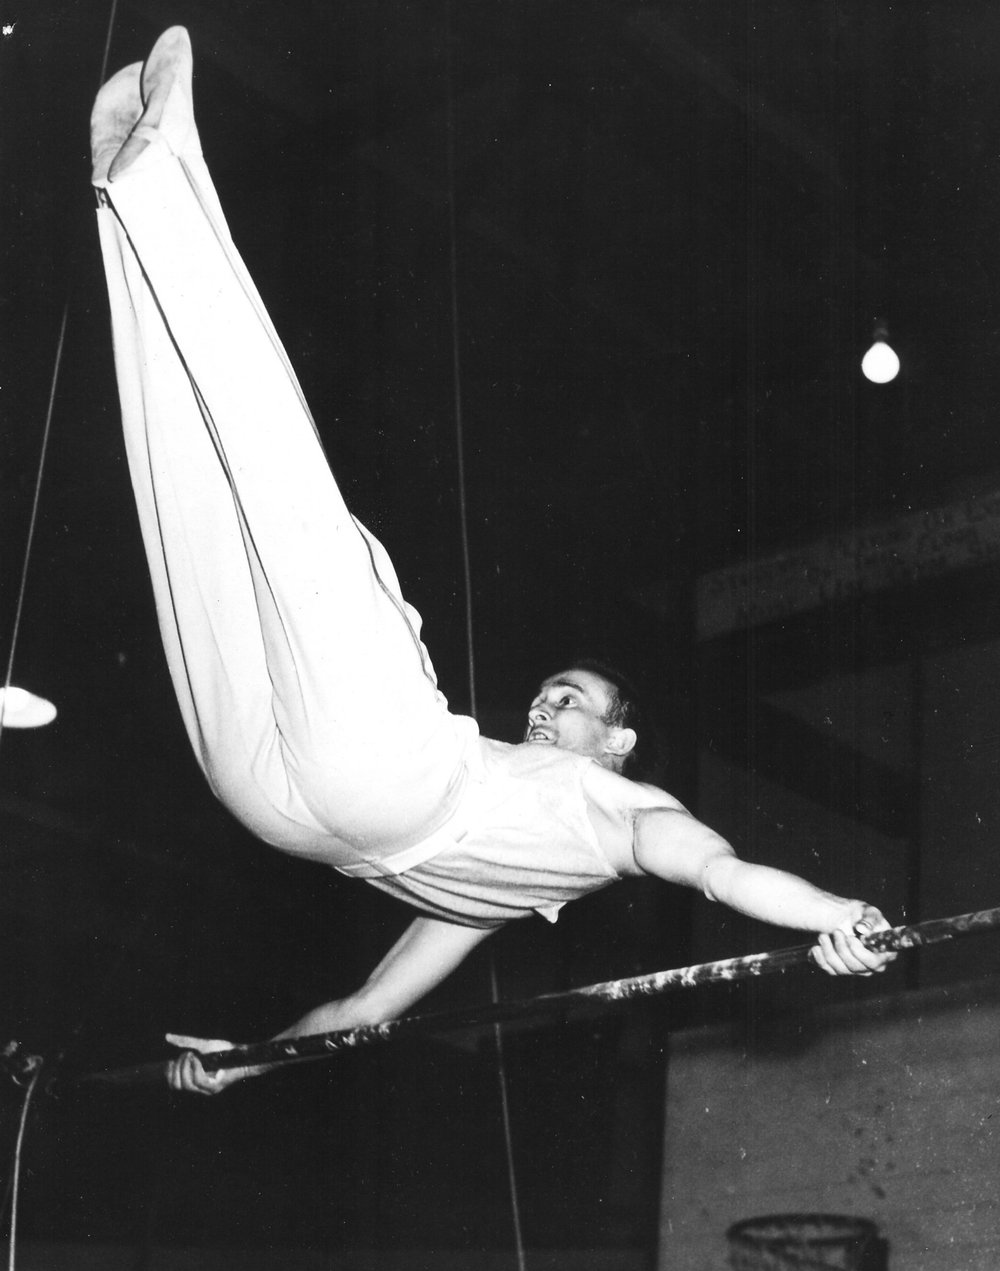 Capt. Charles Pinckney doing an Eagle on the Horizontal Bar (1950)